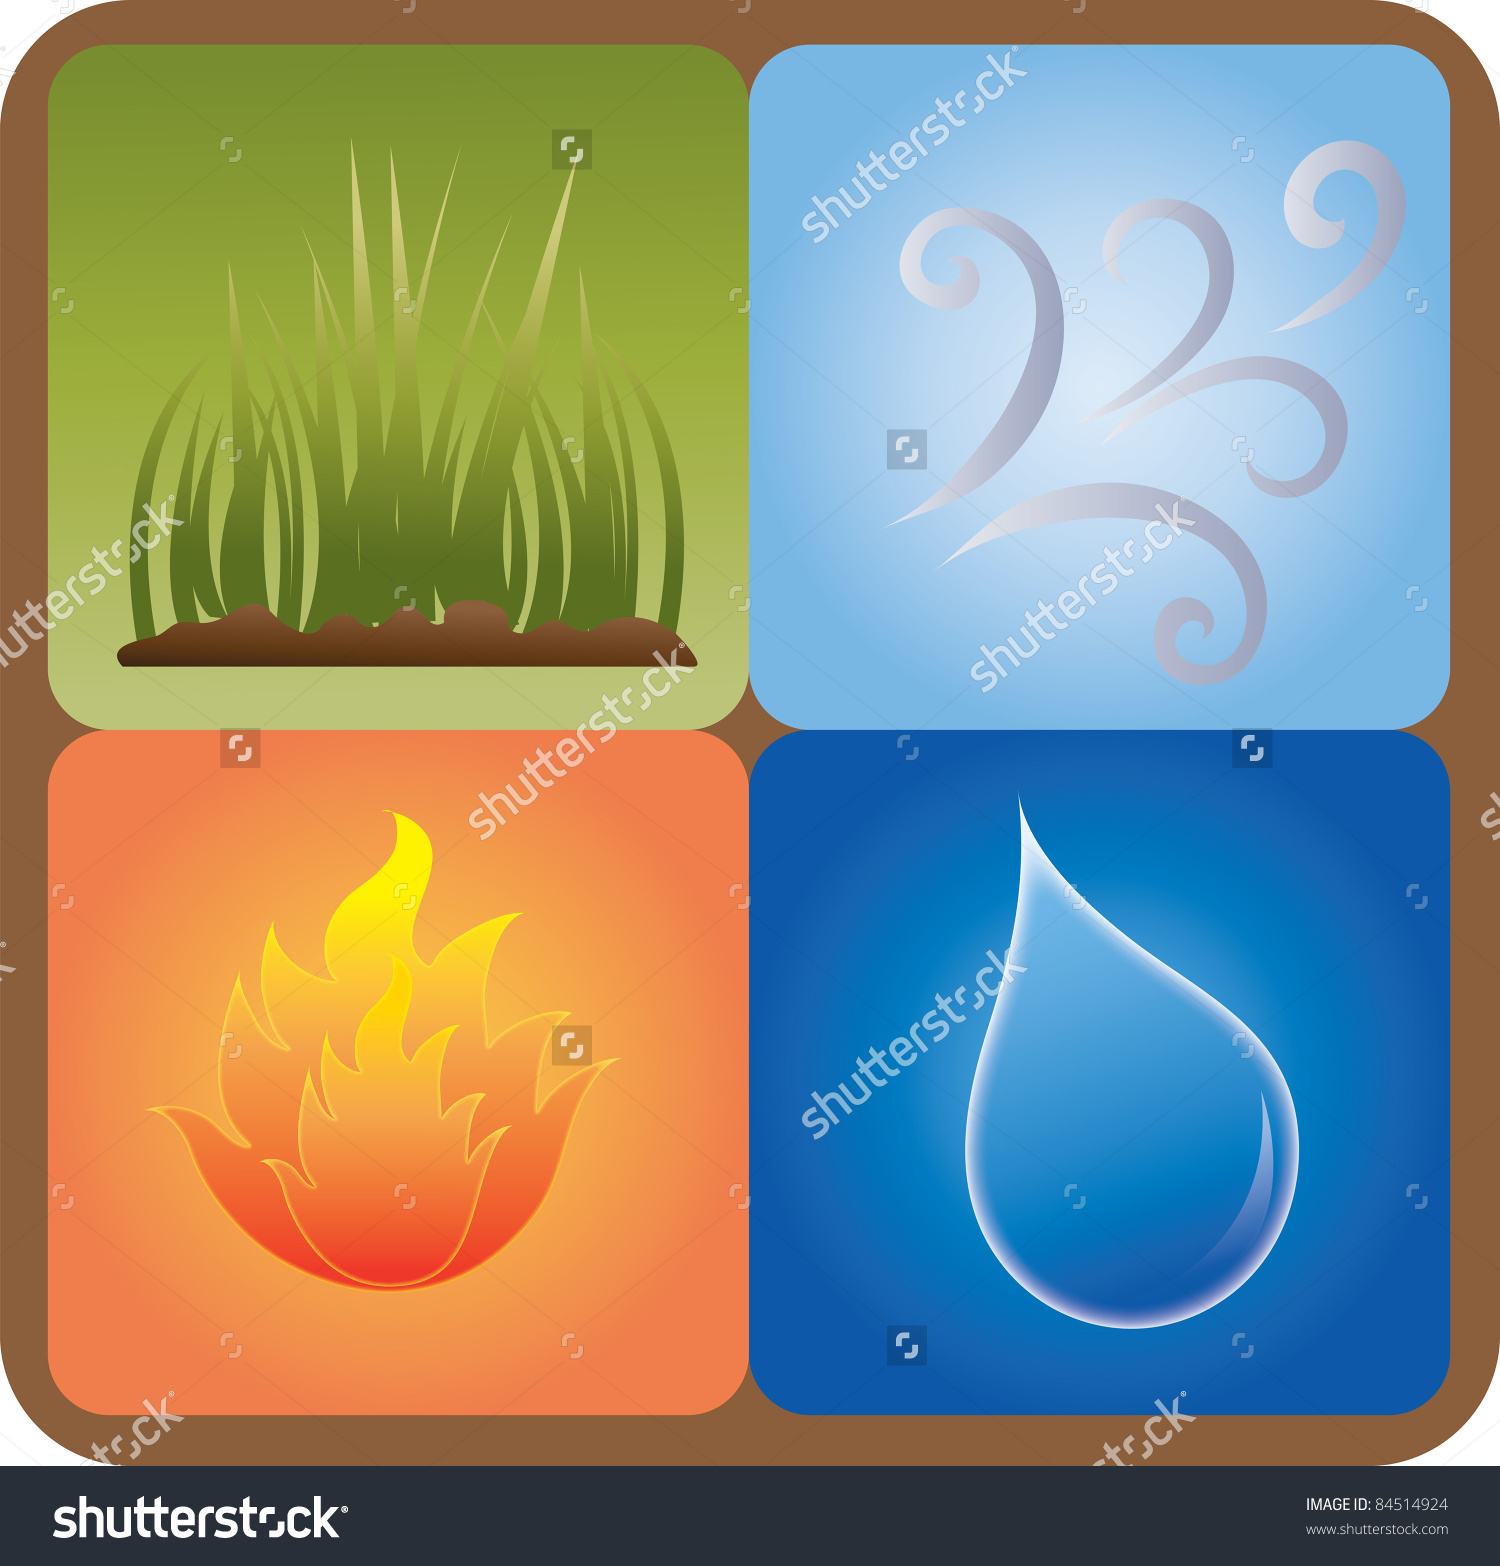 The Four Elements clipart #8, Download drawings